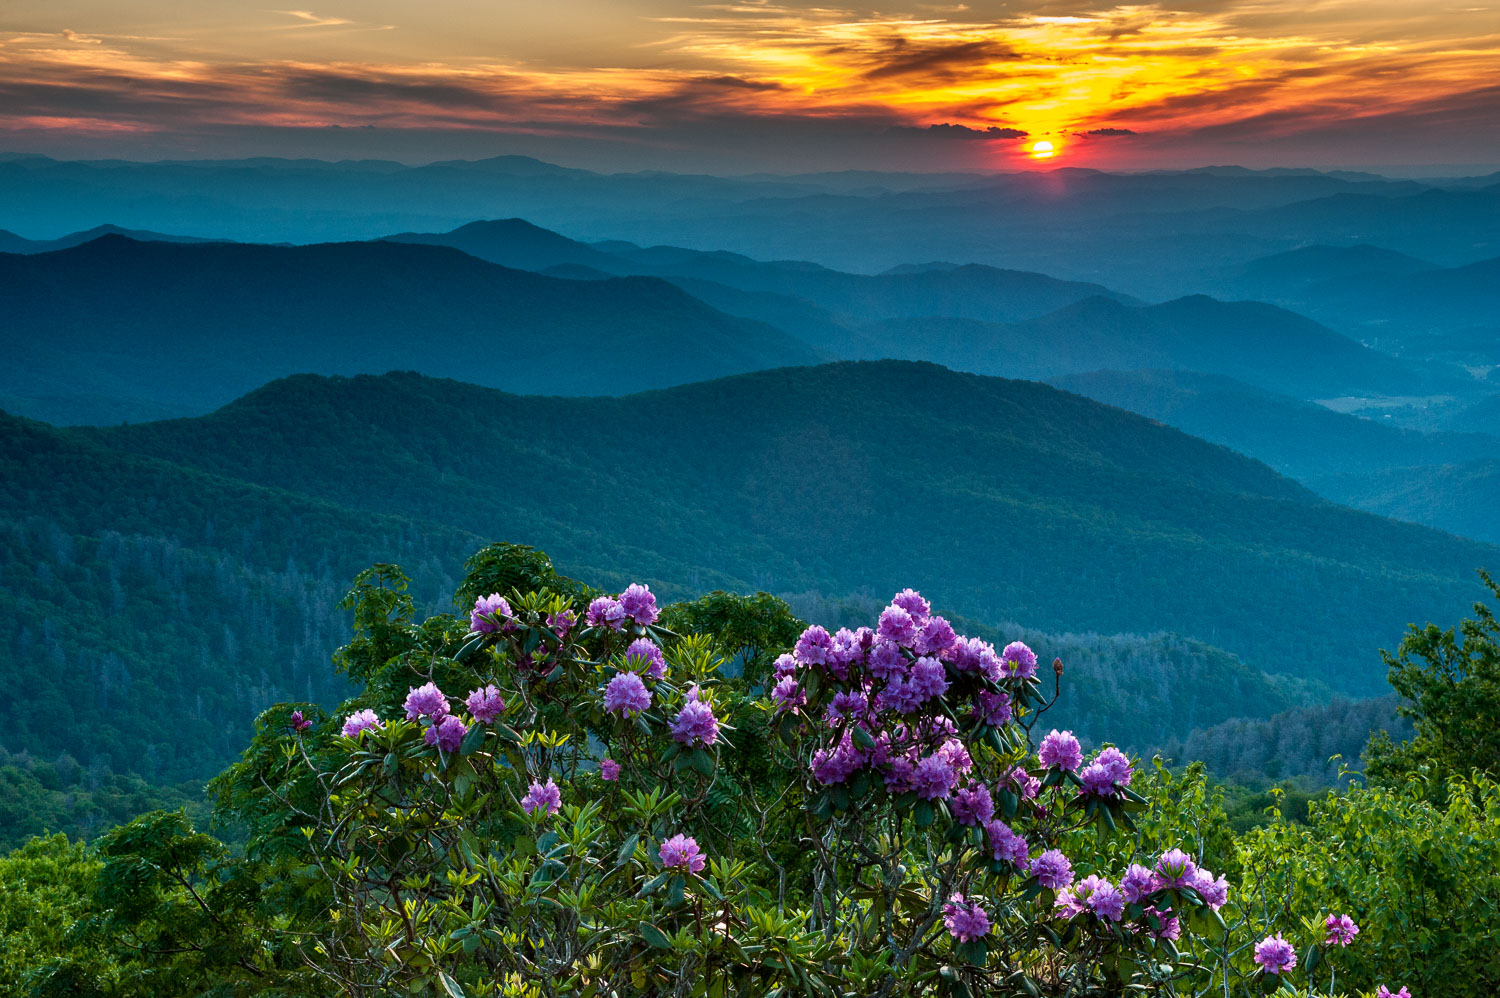 """Rhododendron Sunset"", Blue Ridge Parkway, North Carolina"